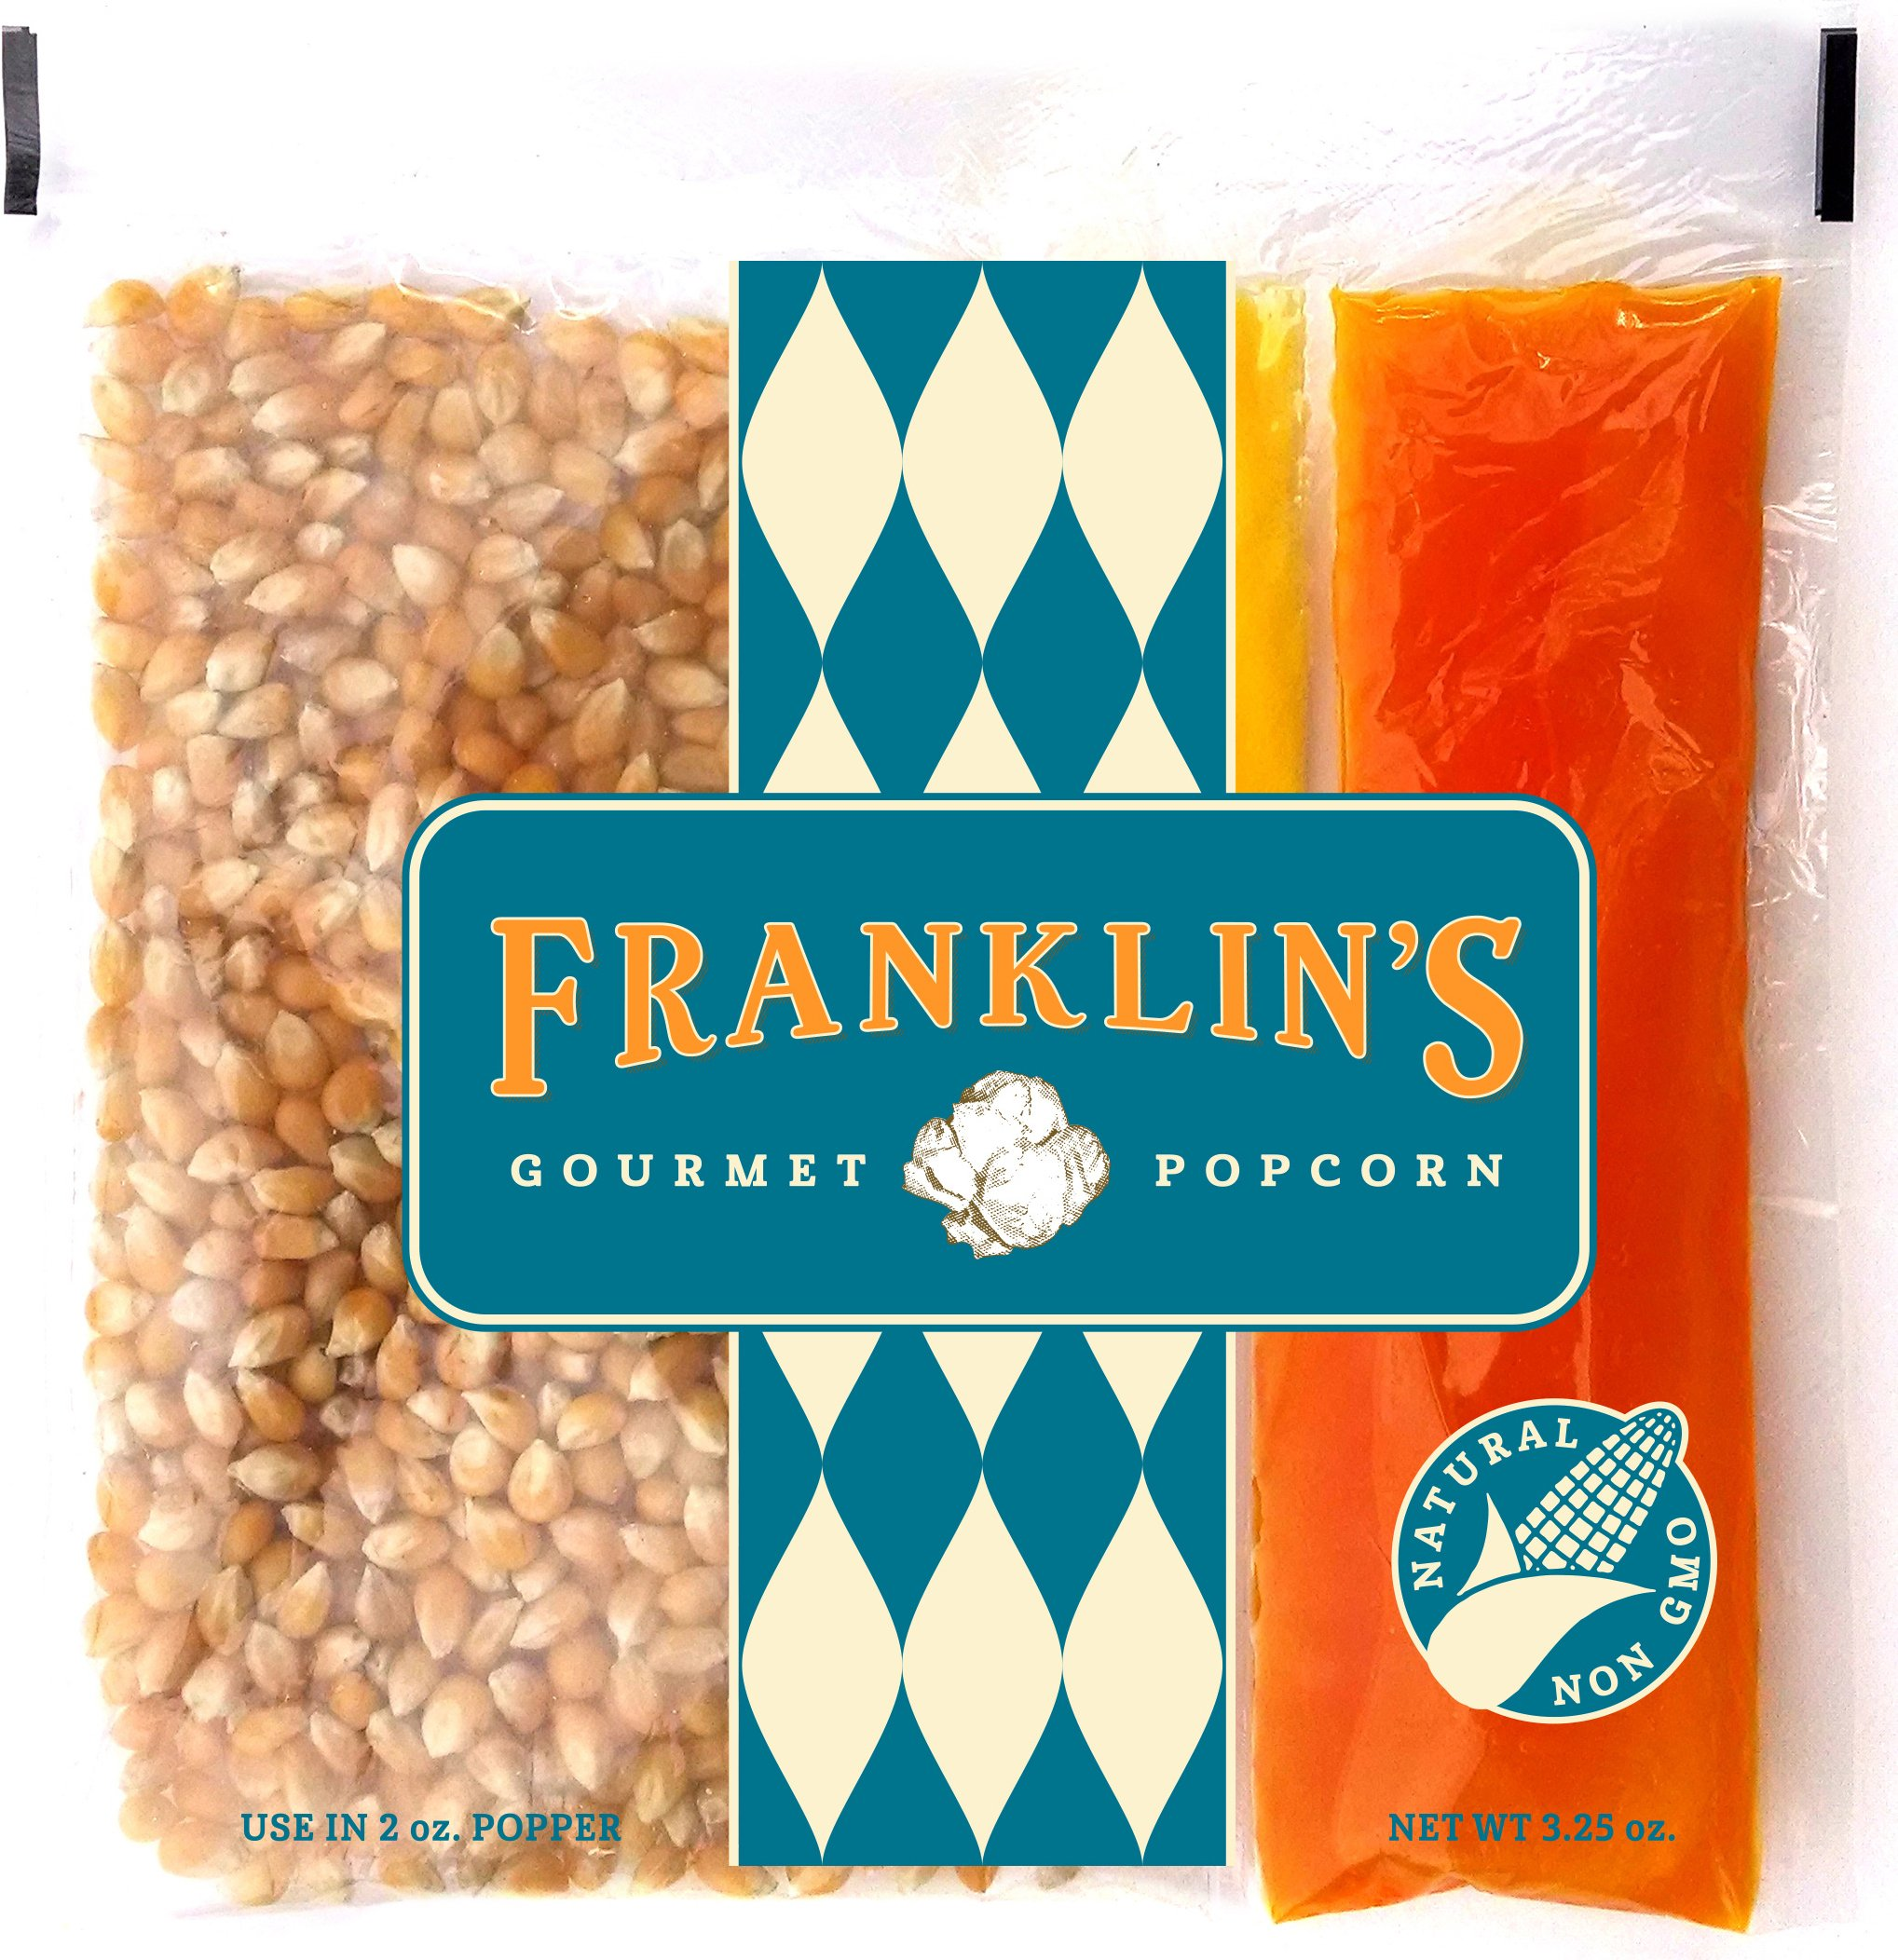 Franklin's Gourmet Movie Theater Popcorn. Organic Popping Corn, 100% Coconut Oil, Seasoning Salt. Pre-Measured Portion Packs (Pack of 10).